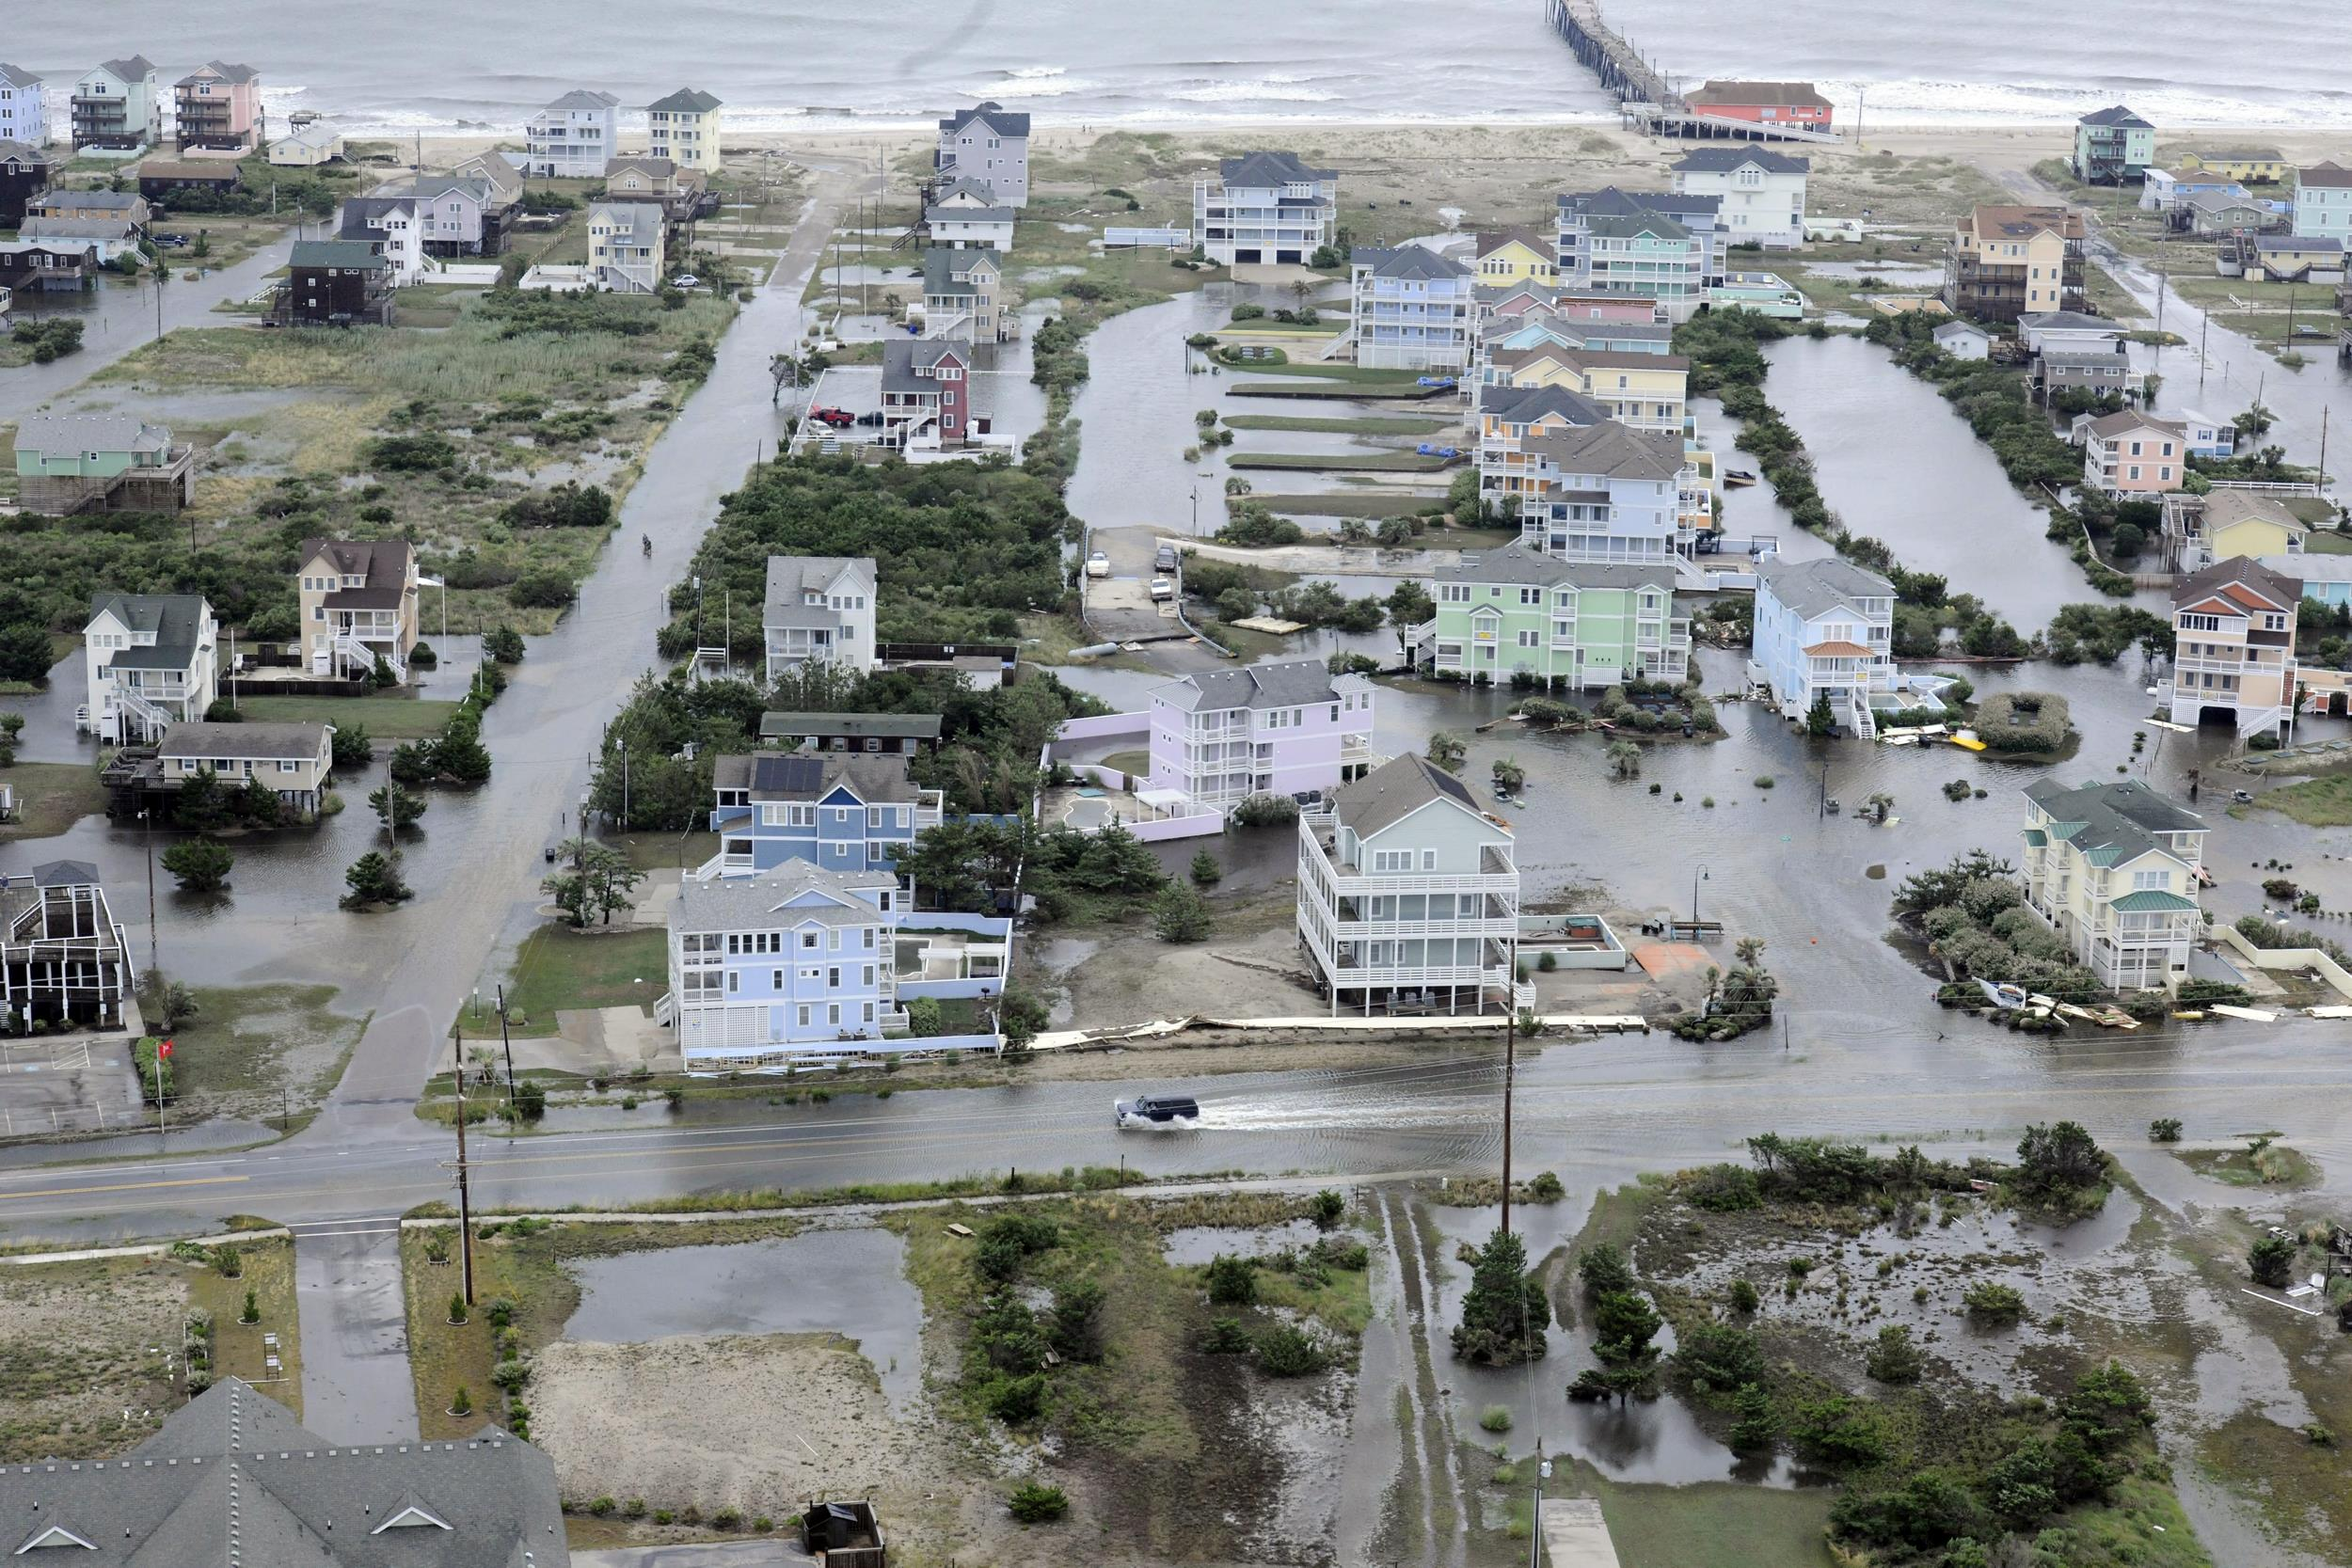 Image: Hurricane Arthur aftermath and damage